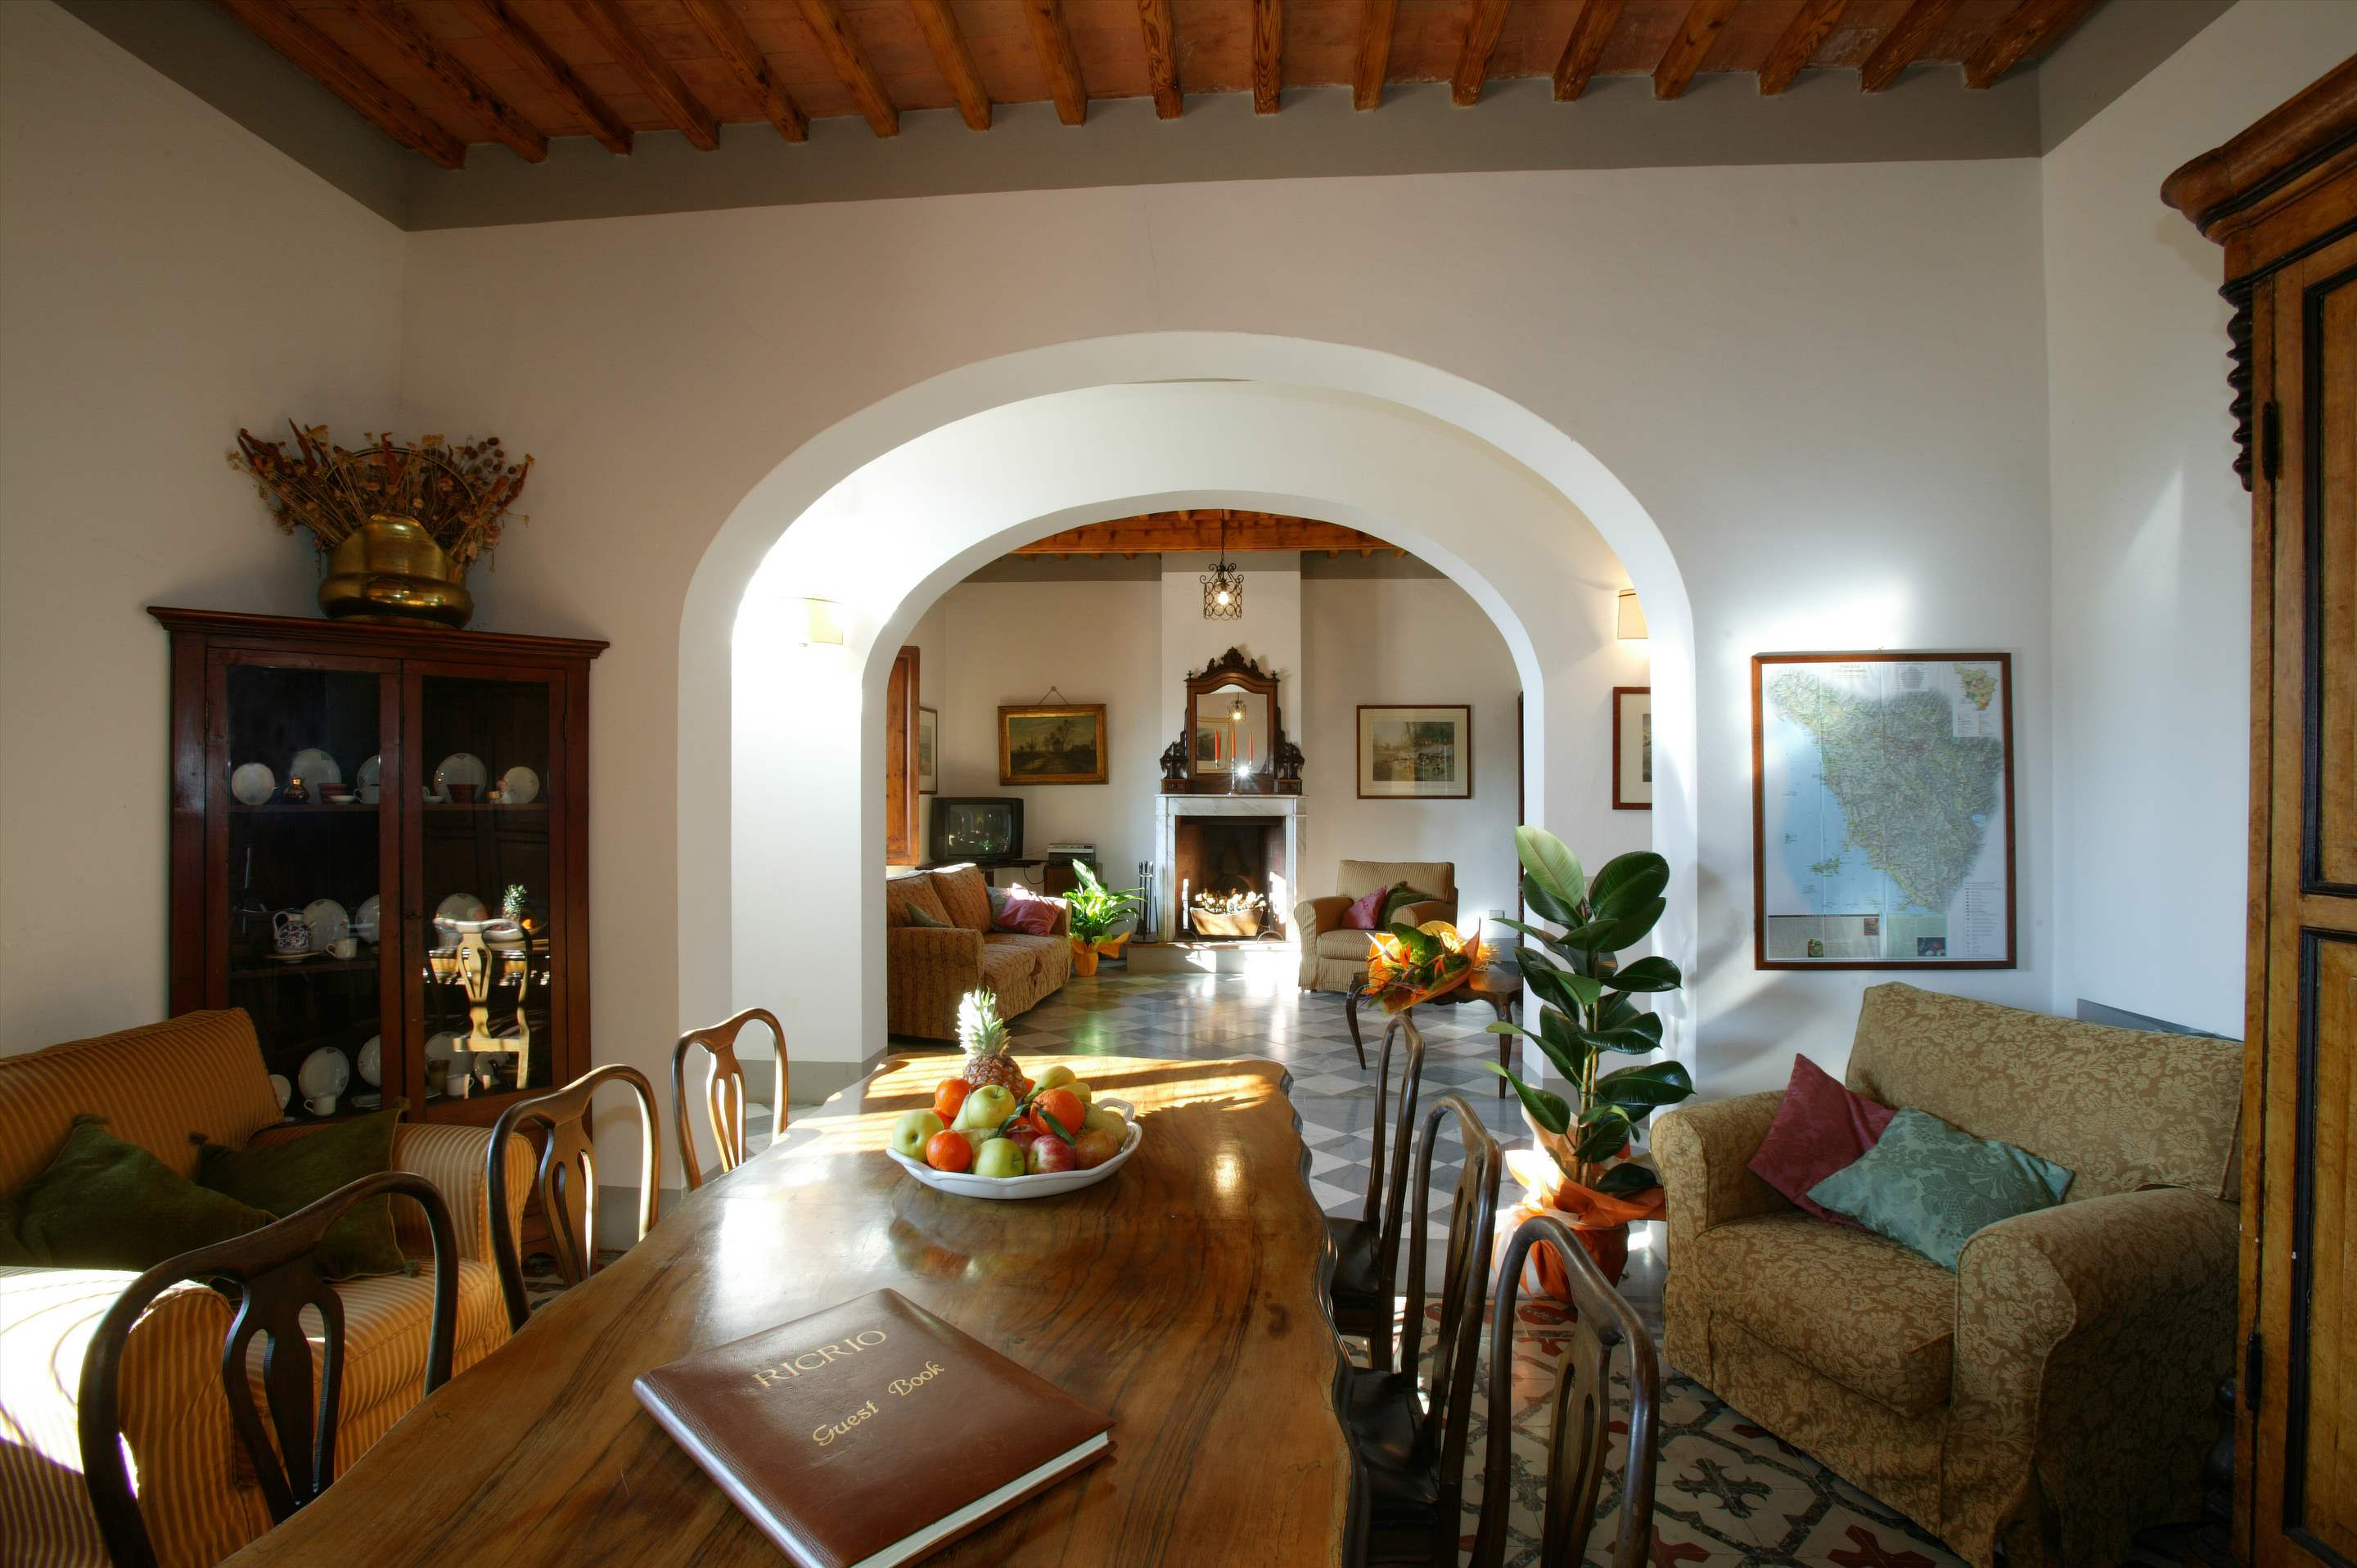 Villa Di Archi & Dependance, 9 bedroom villa in Tuscany Coast, Tuscany Photo #8